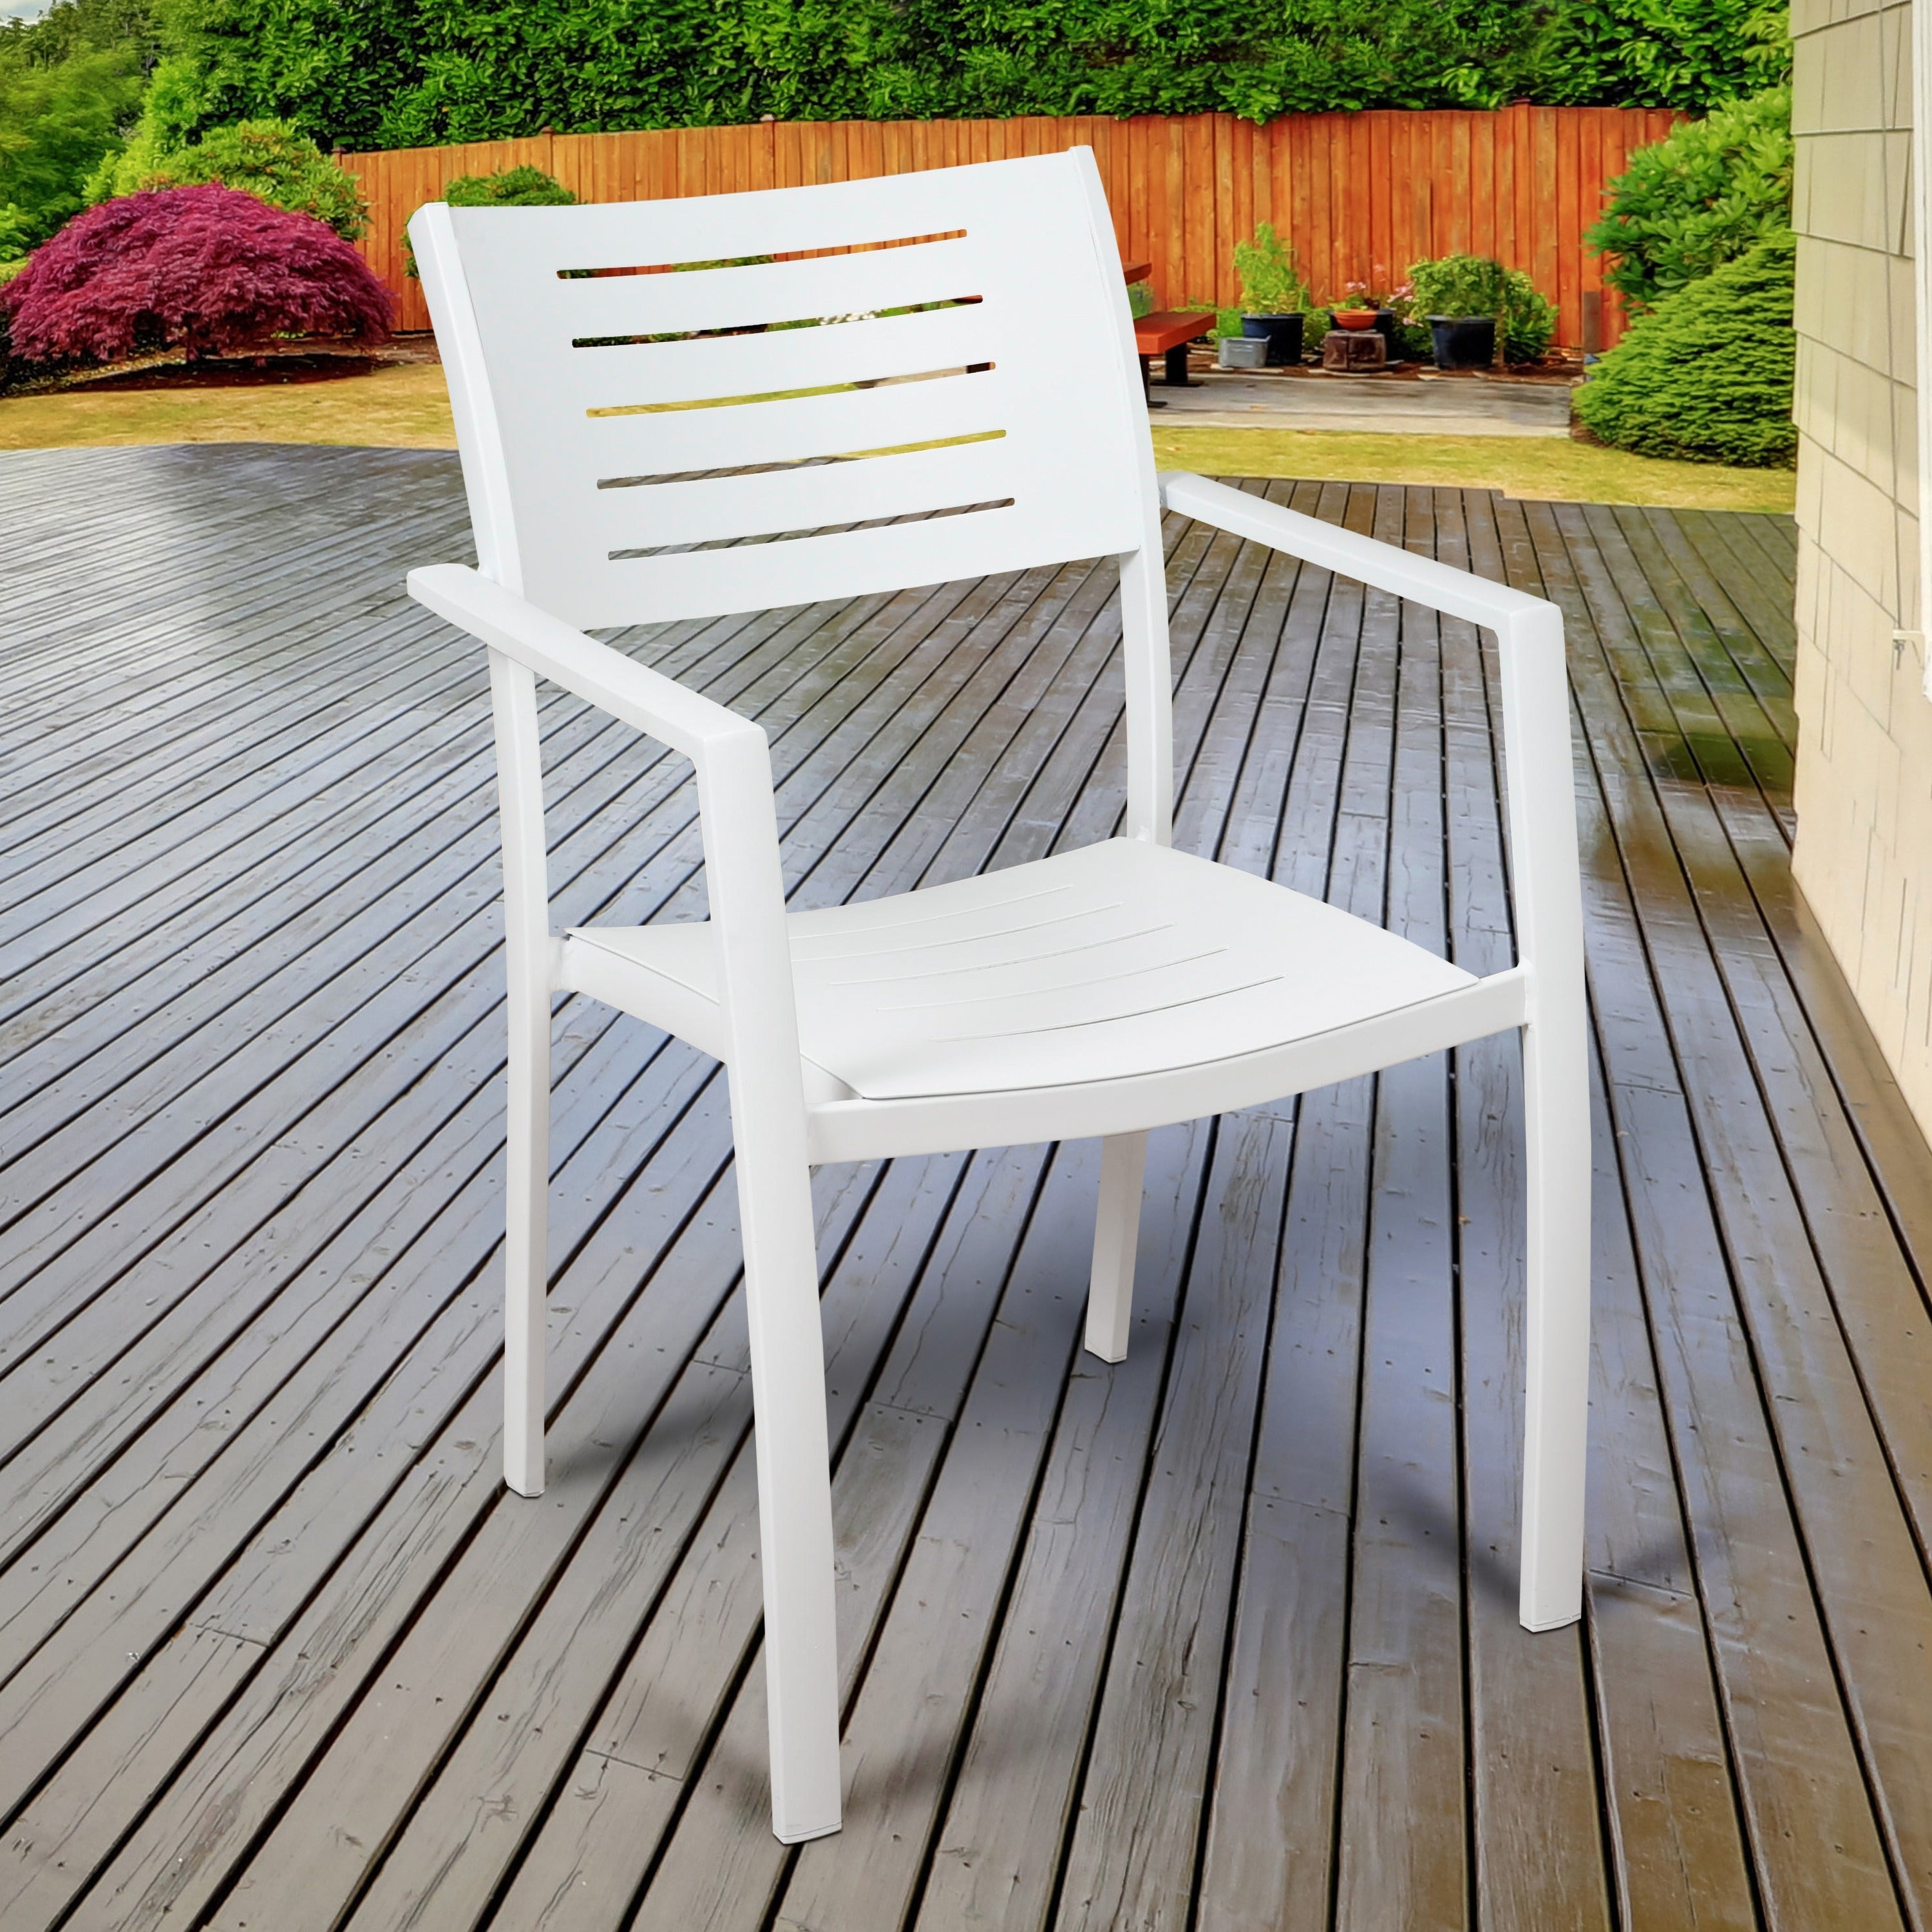 Havenside Home Mandalay 4 Piece Patio Dining Chairs, White Intended For Most Popular John 4 Piece Dining Sets (Image 7 of 20)